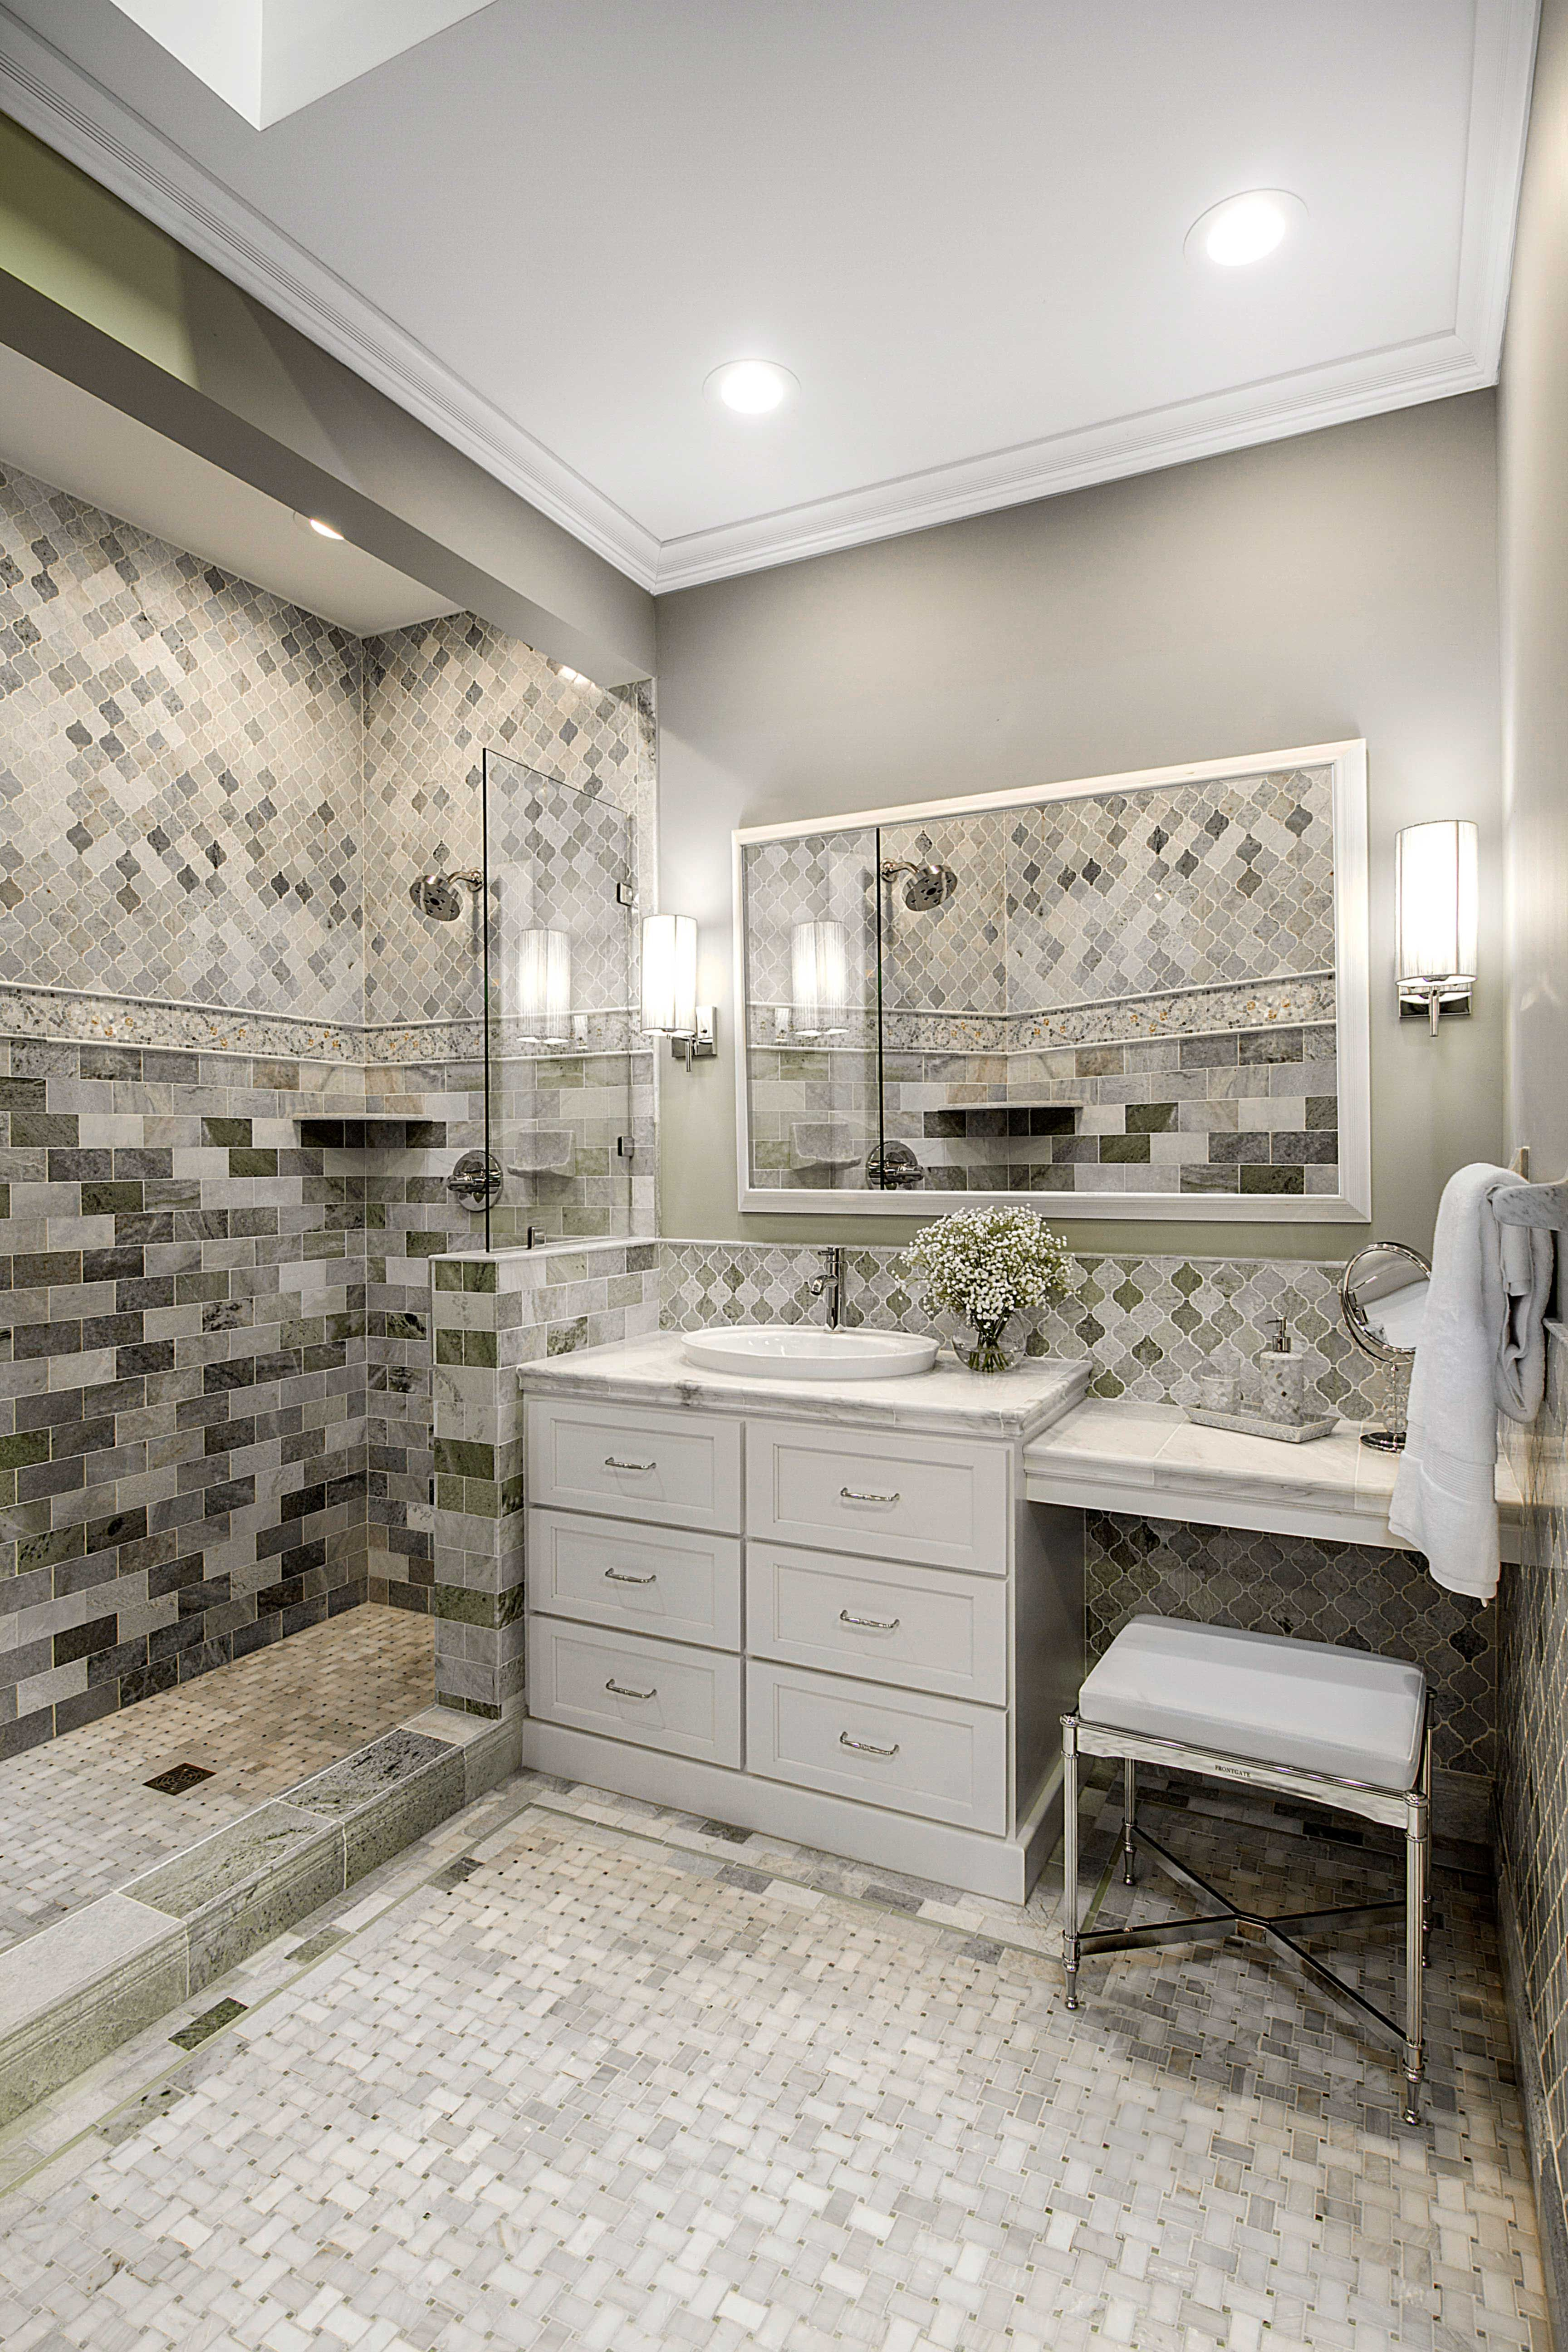 Bathroom shower marble tile cappuccino niles with dark emperador basketweave design bathroom floor tile biltmore niles marble mosaic tile httpswww dailygadgetfo Images